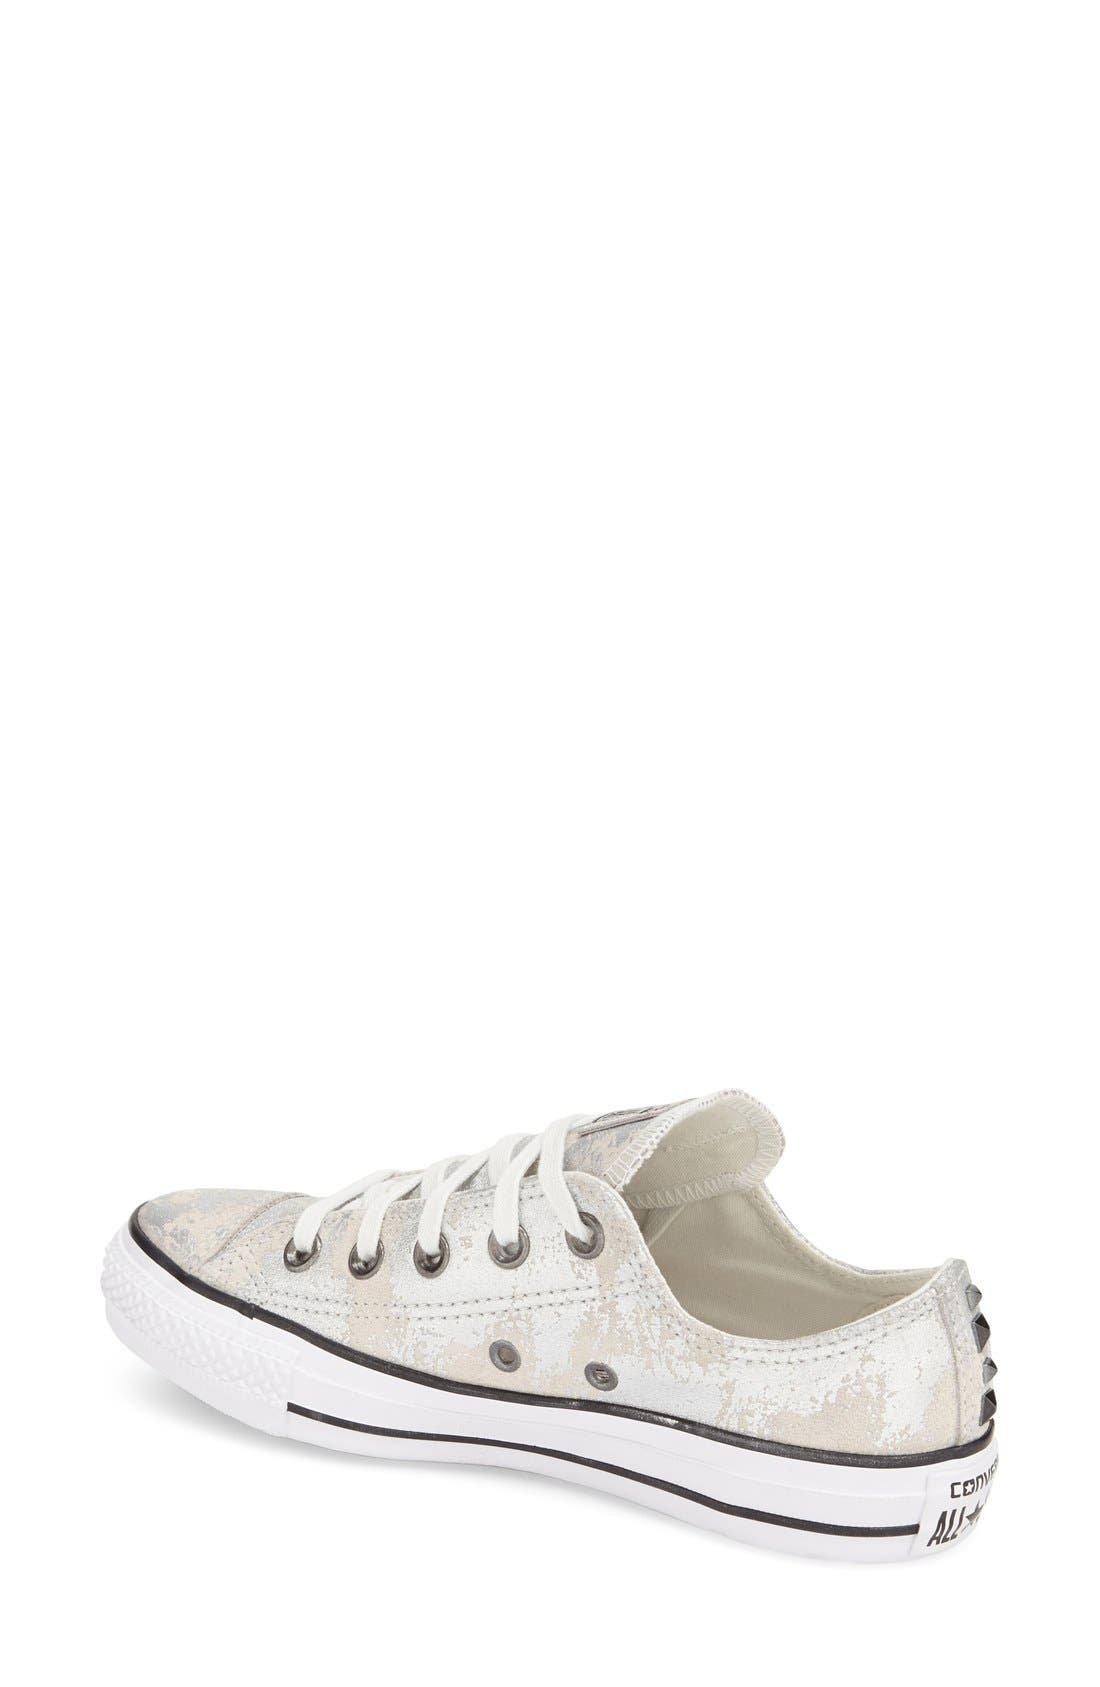 Alternate Image 2  - Converse Chuck Taylor® All Star® 'Pyramid' Leather Sneaker (Women)